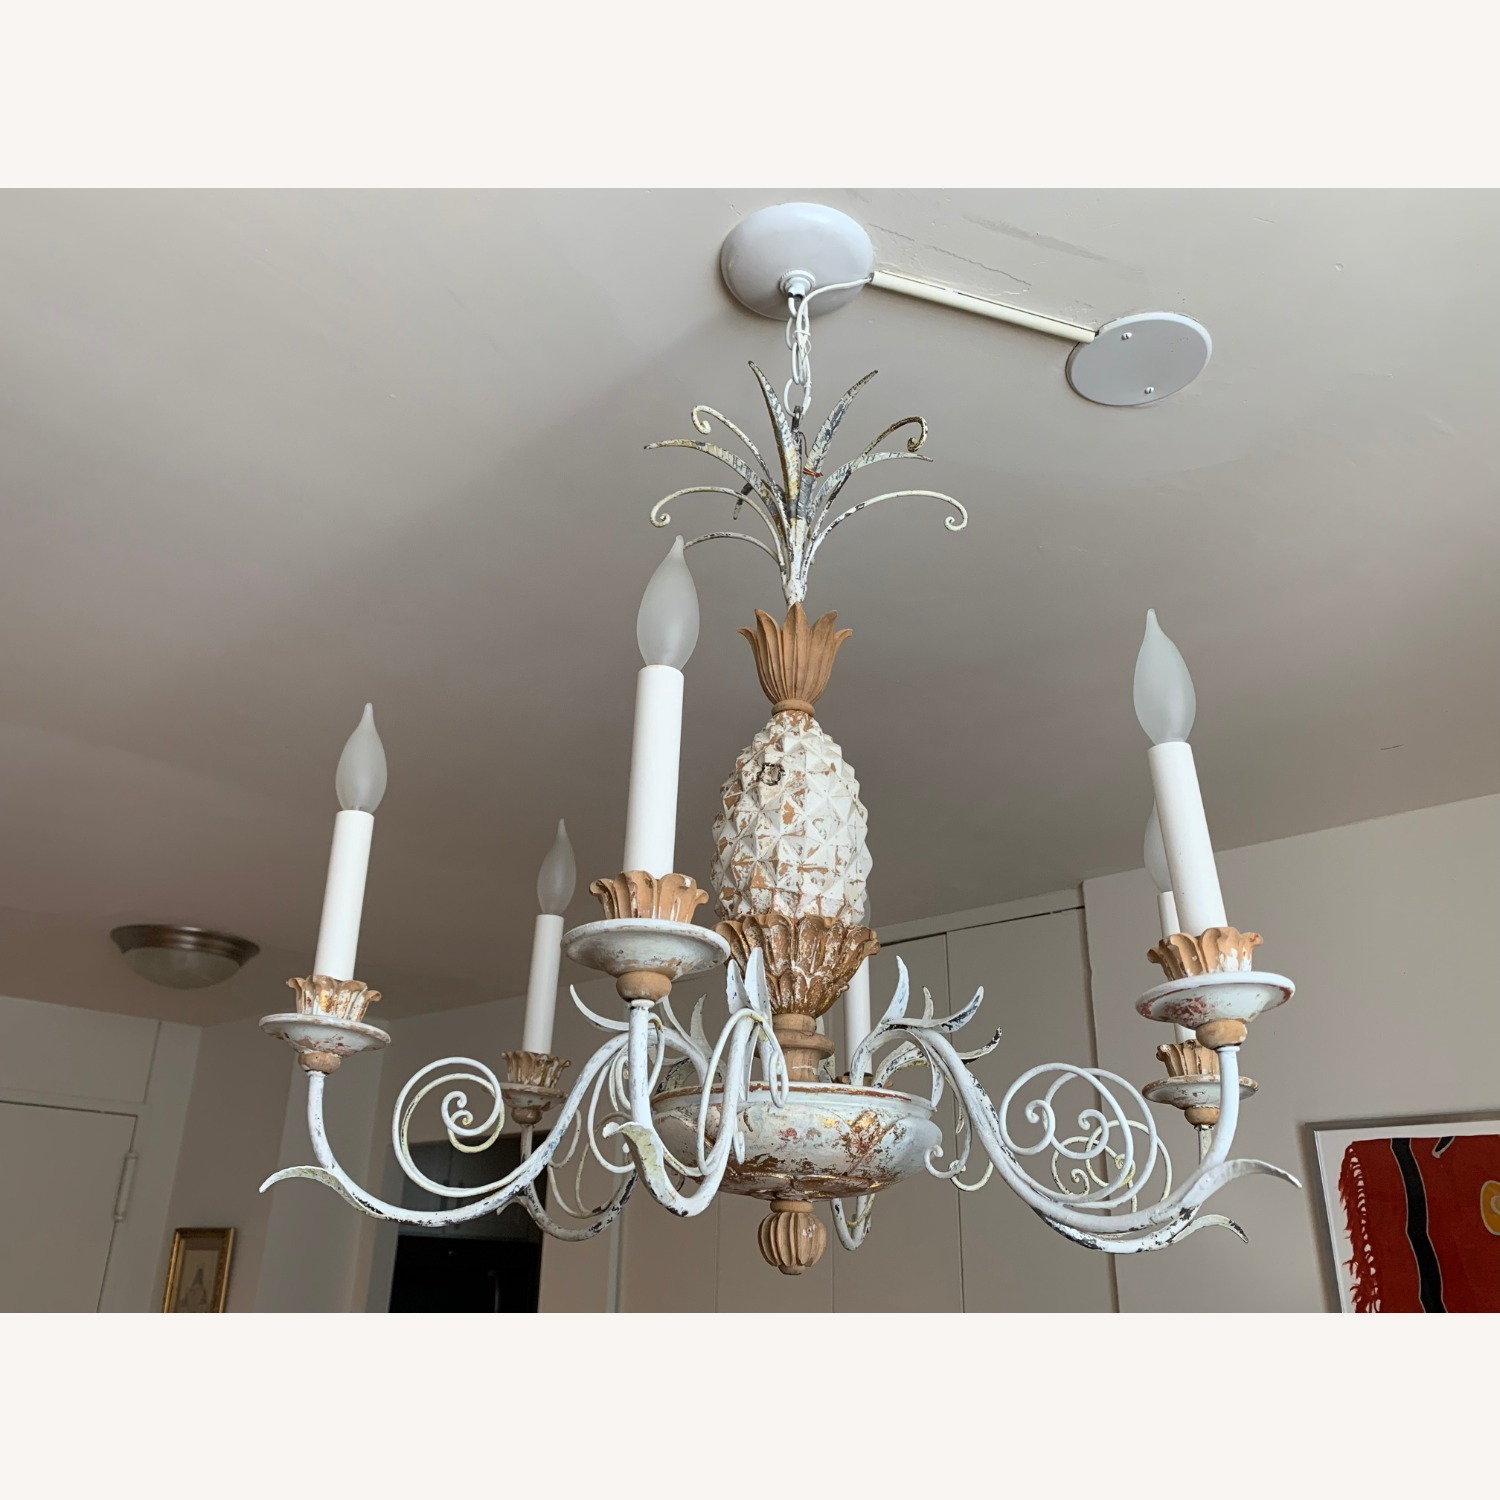 1920s White-Painted Wood and Metal Chandelier - image-1